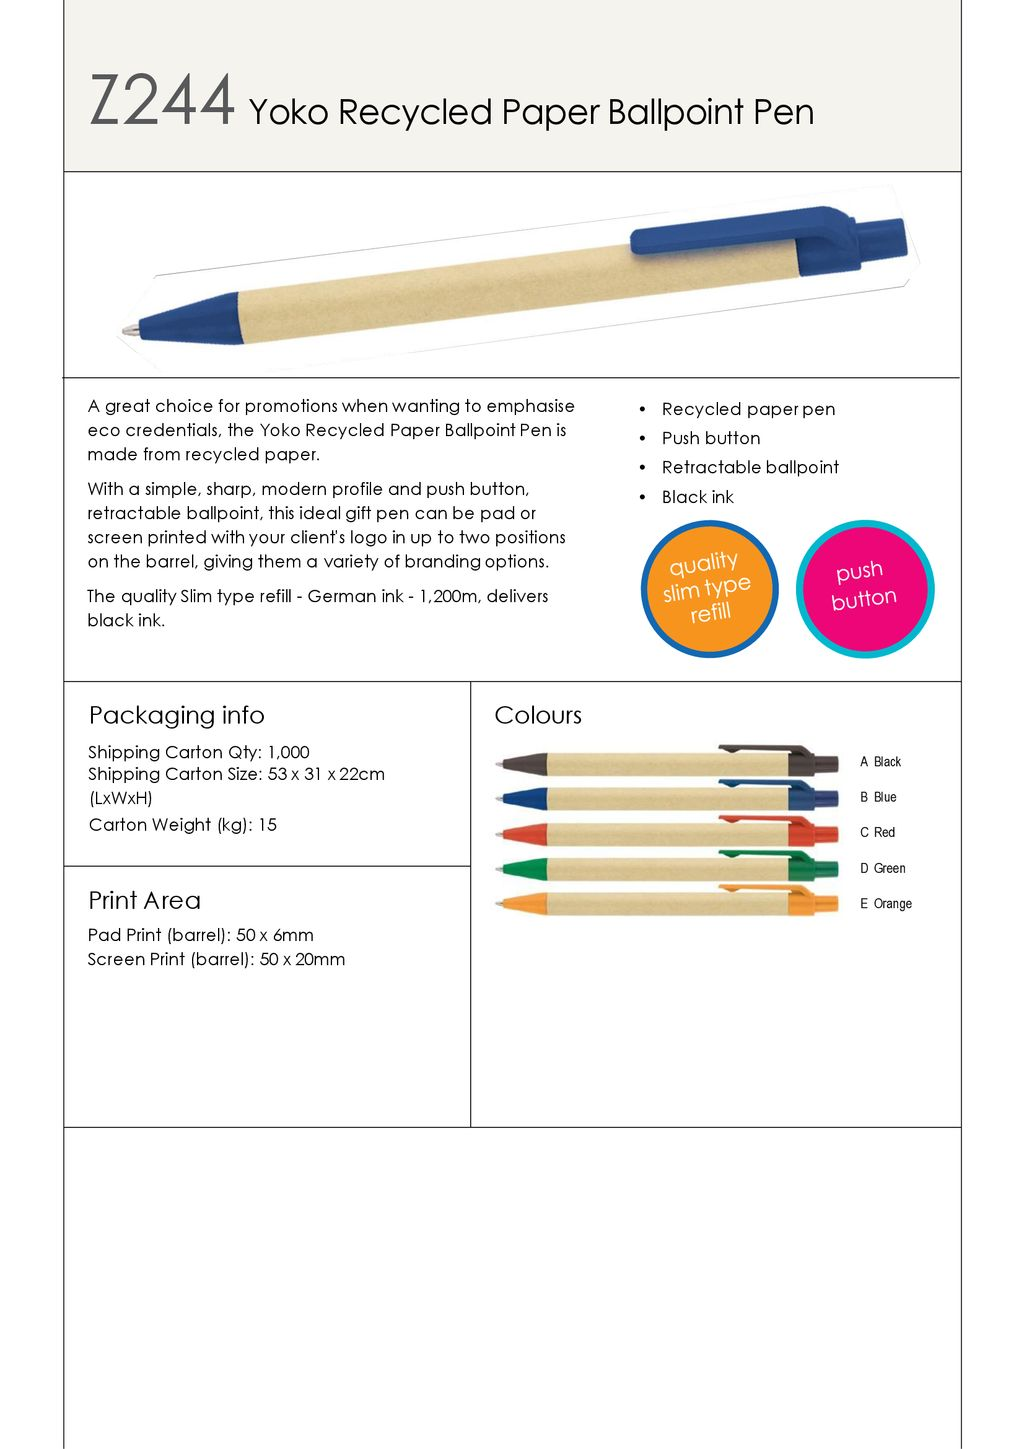 Z244 Yoko Recycled Paper Ballpoint Pen - ppt download